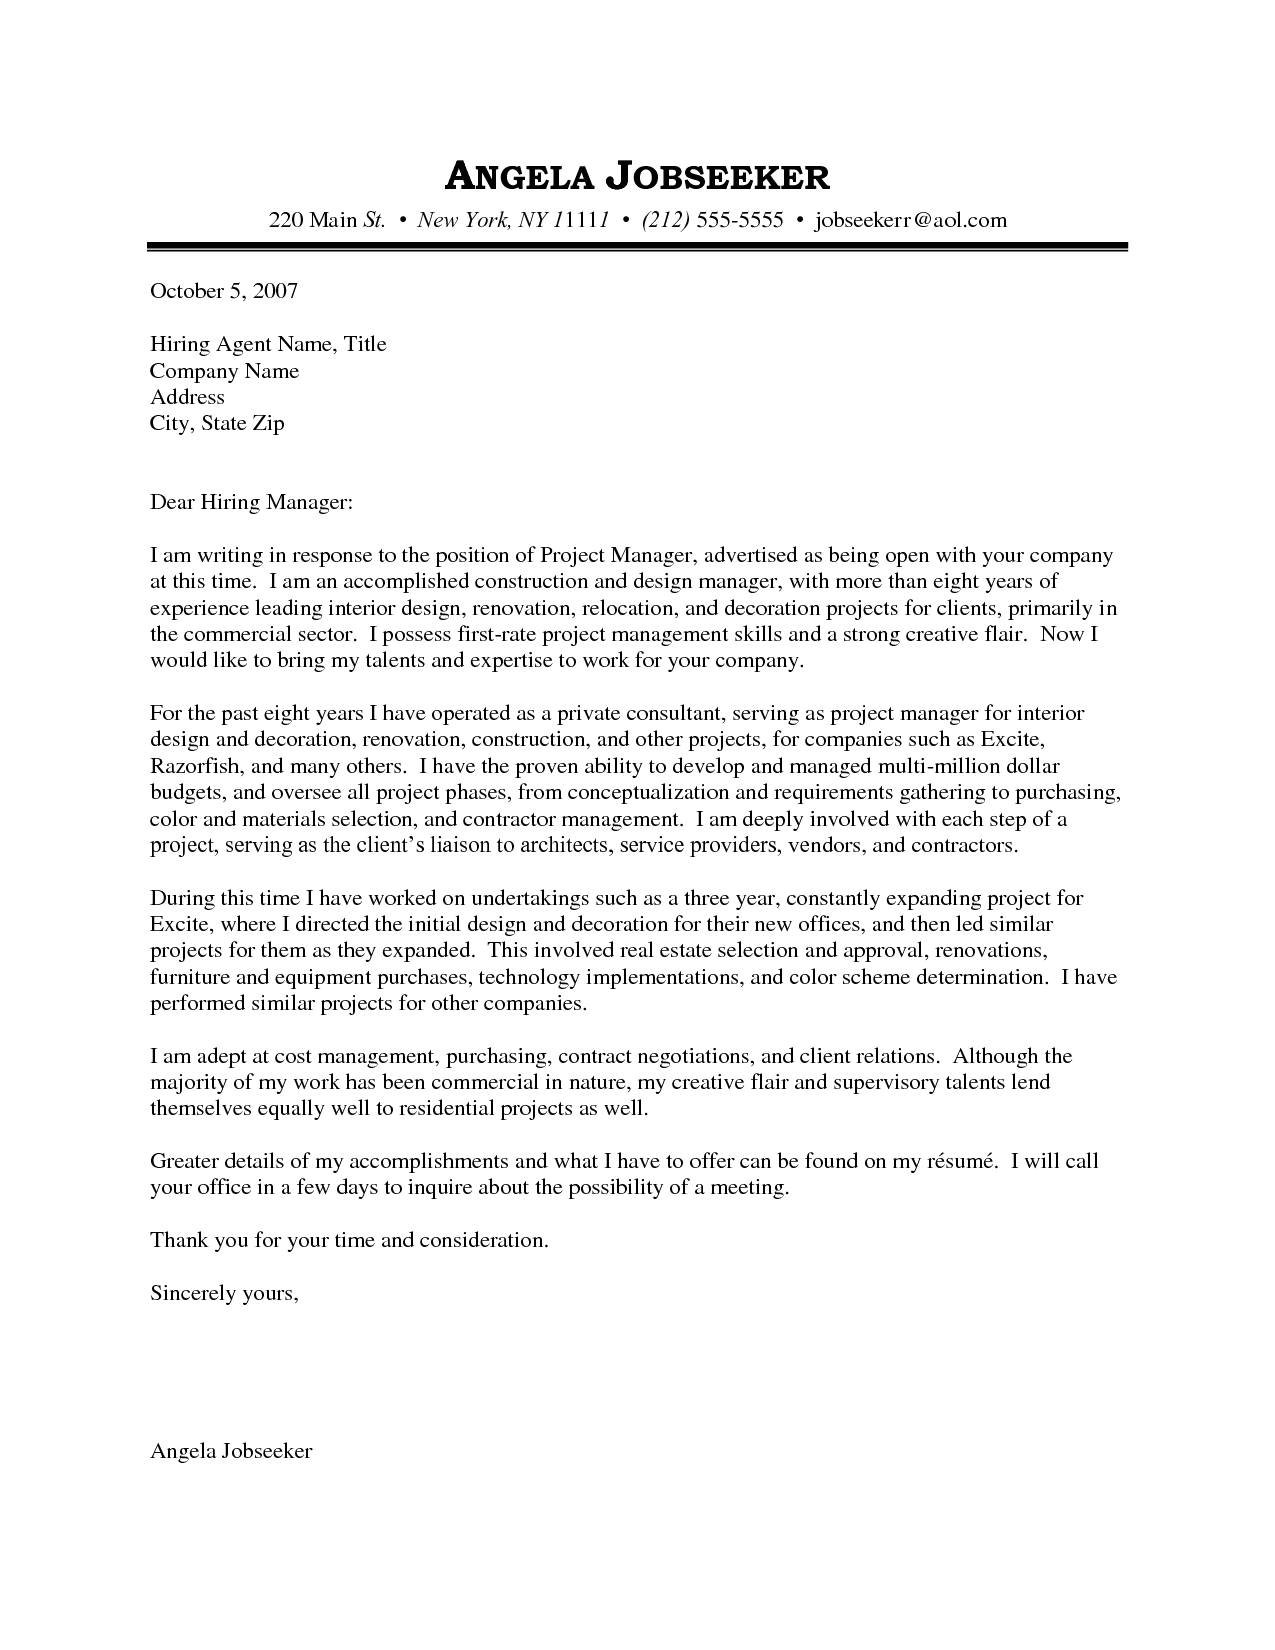 Does Cv Stand for Cover Letter Nice Cv Stands for Cover Letter Images Gallery